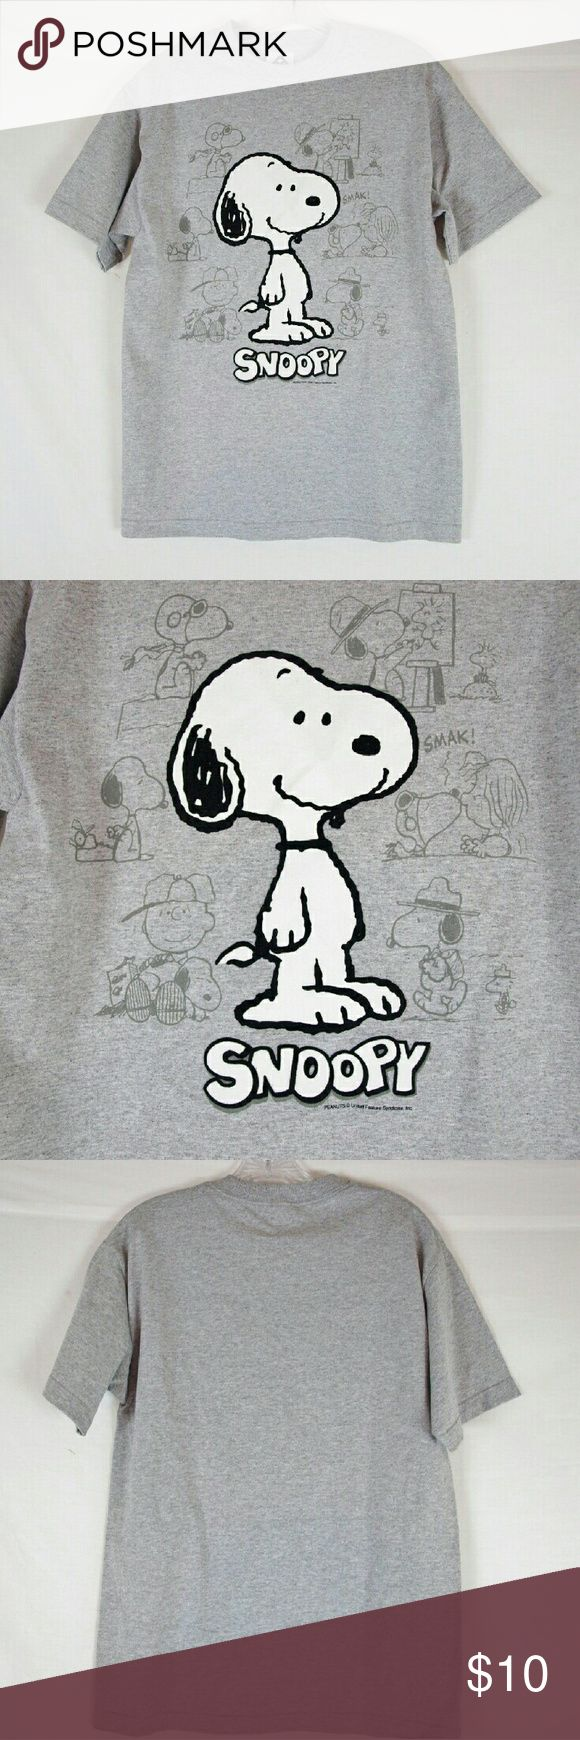 "Men's Peanuts Snoopy T-Shirt Size M In excellent condition (worn once). Armpit to armpit: 19"" & length 28"". Material 90% cotton & 10 polyester. Add to a bundle to receive 20% off 3 or more items. Offers welcomed. bin c3. Alstyle Apparel Shirts Tees - Short Sleeve"